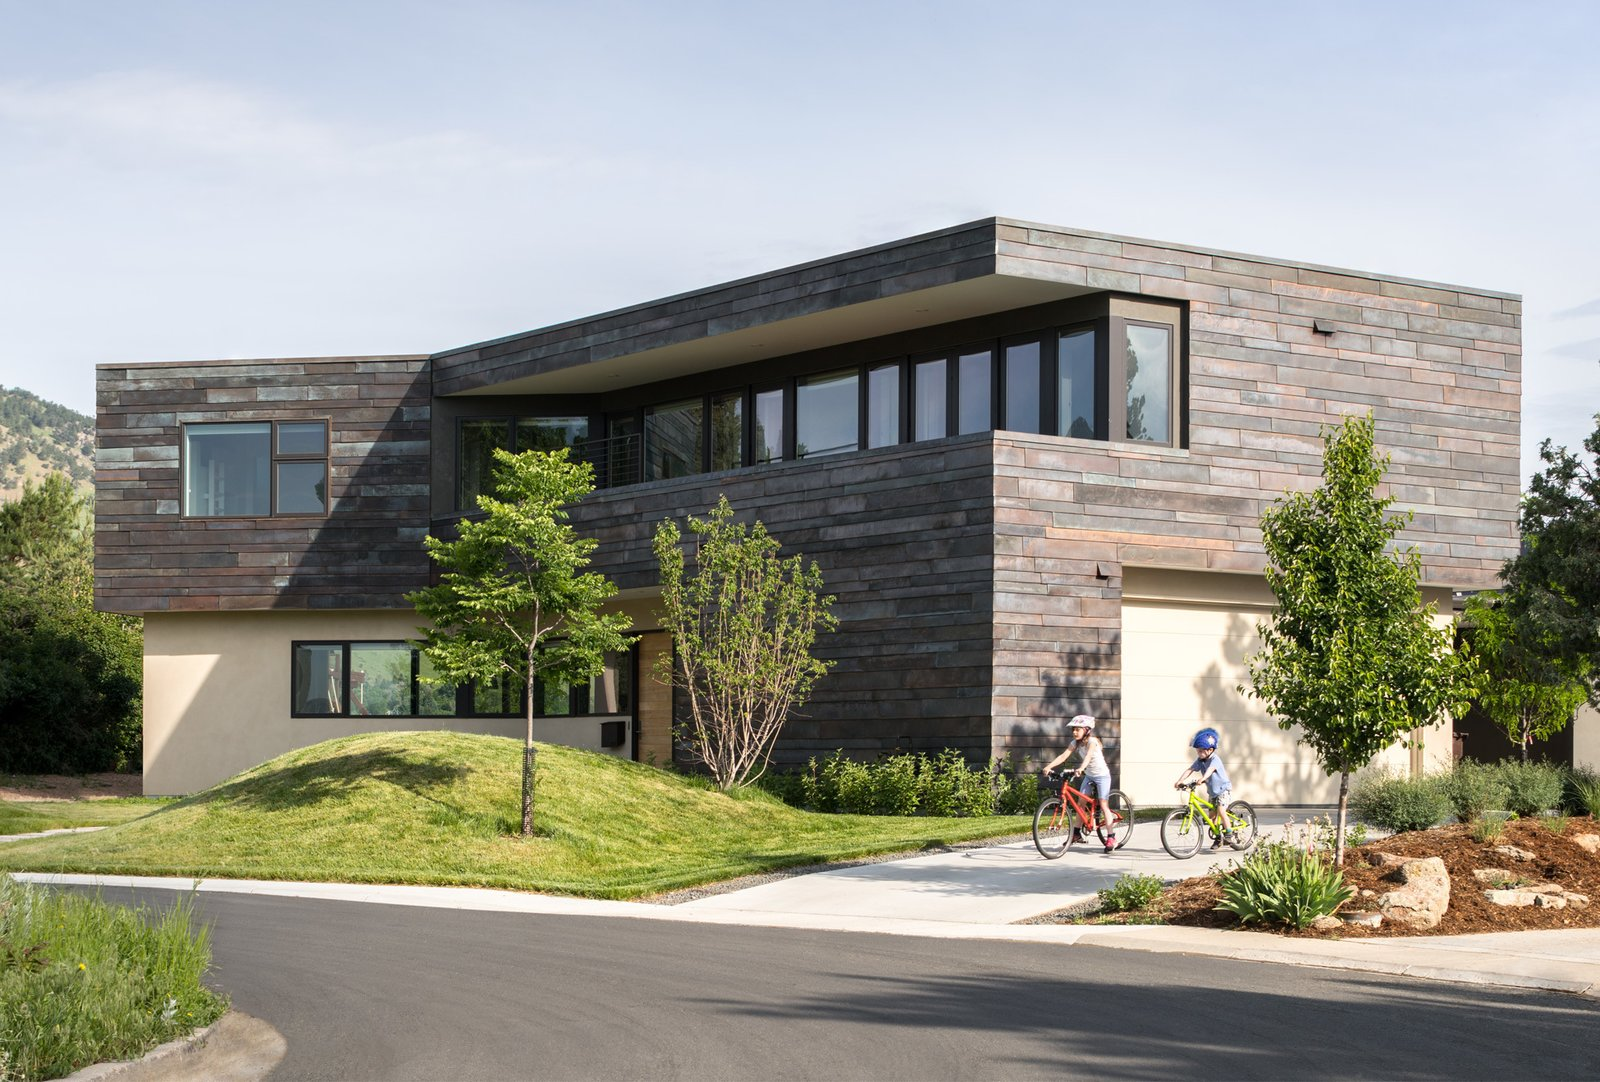 The restrained exterior material palette (copper siding, stucco, and bronze metal clad accents) accentuates the bold forms and angles.